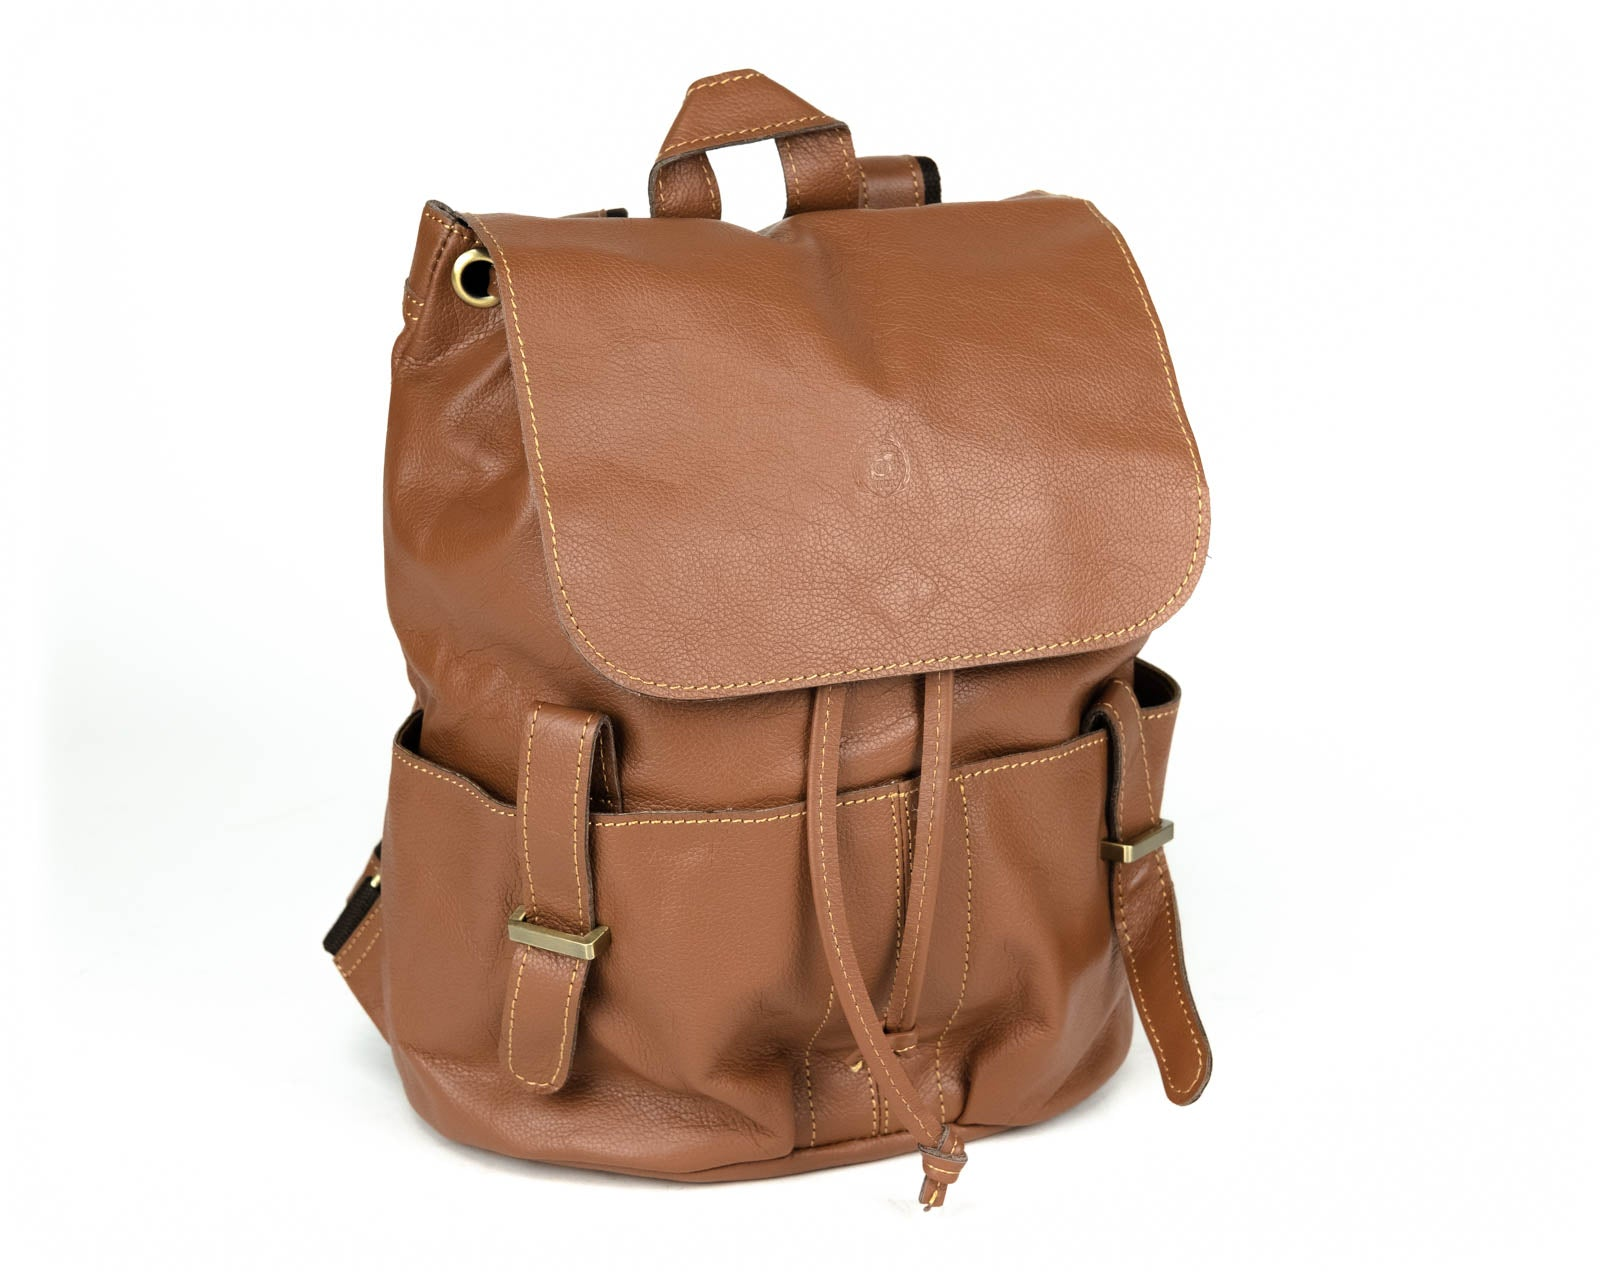 The Lexi Backpack